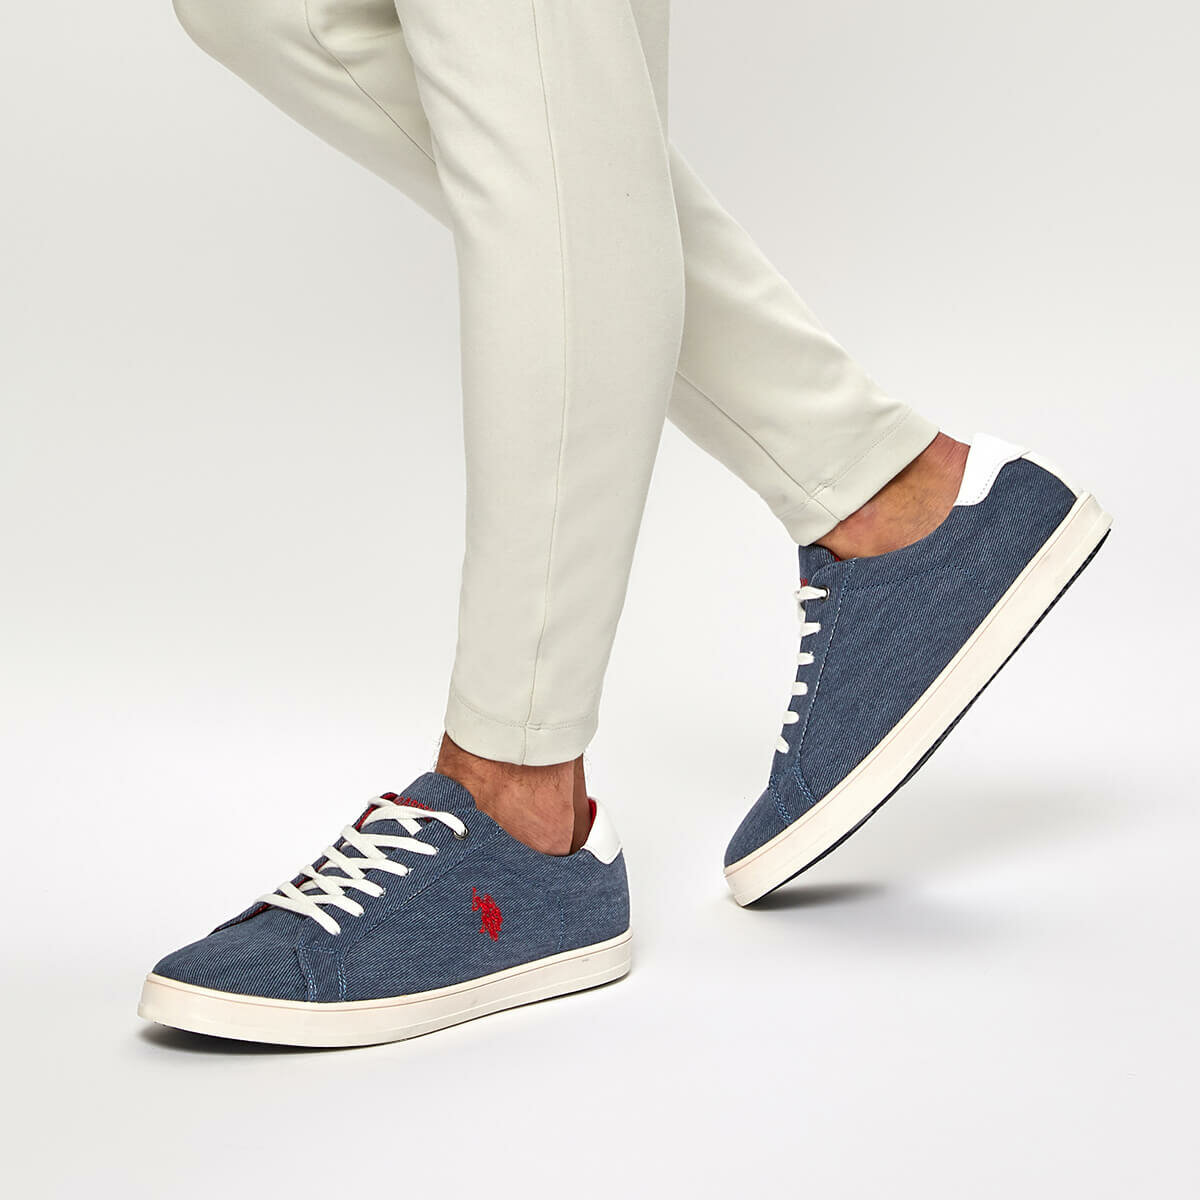 FLO POST Navy Blue Men 'S Sneaker Shoes U.S. POLO ASSN.